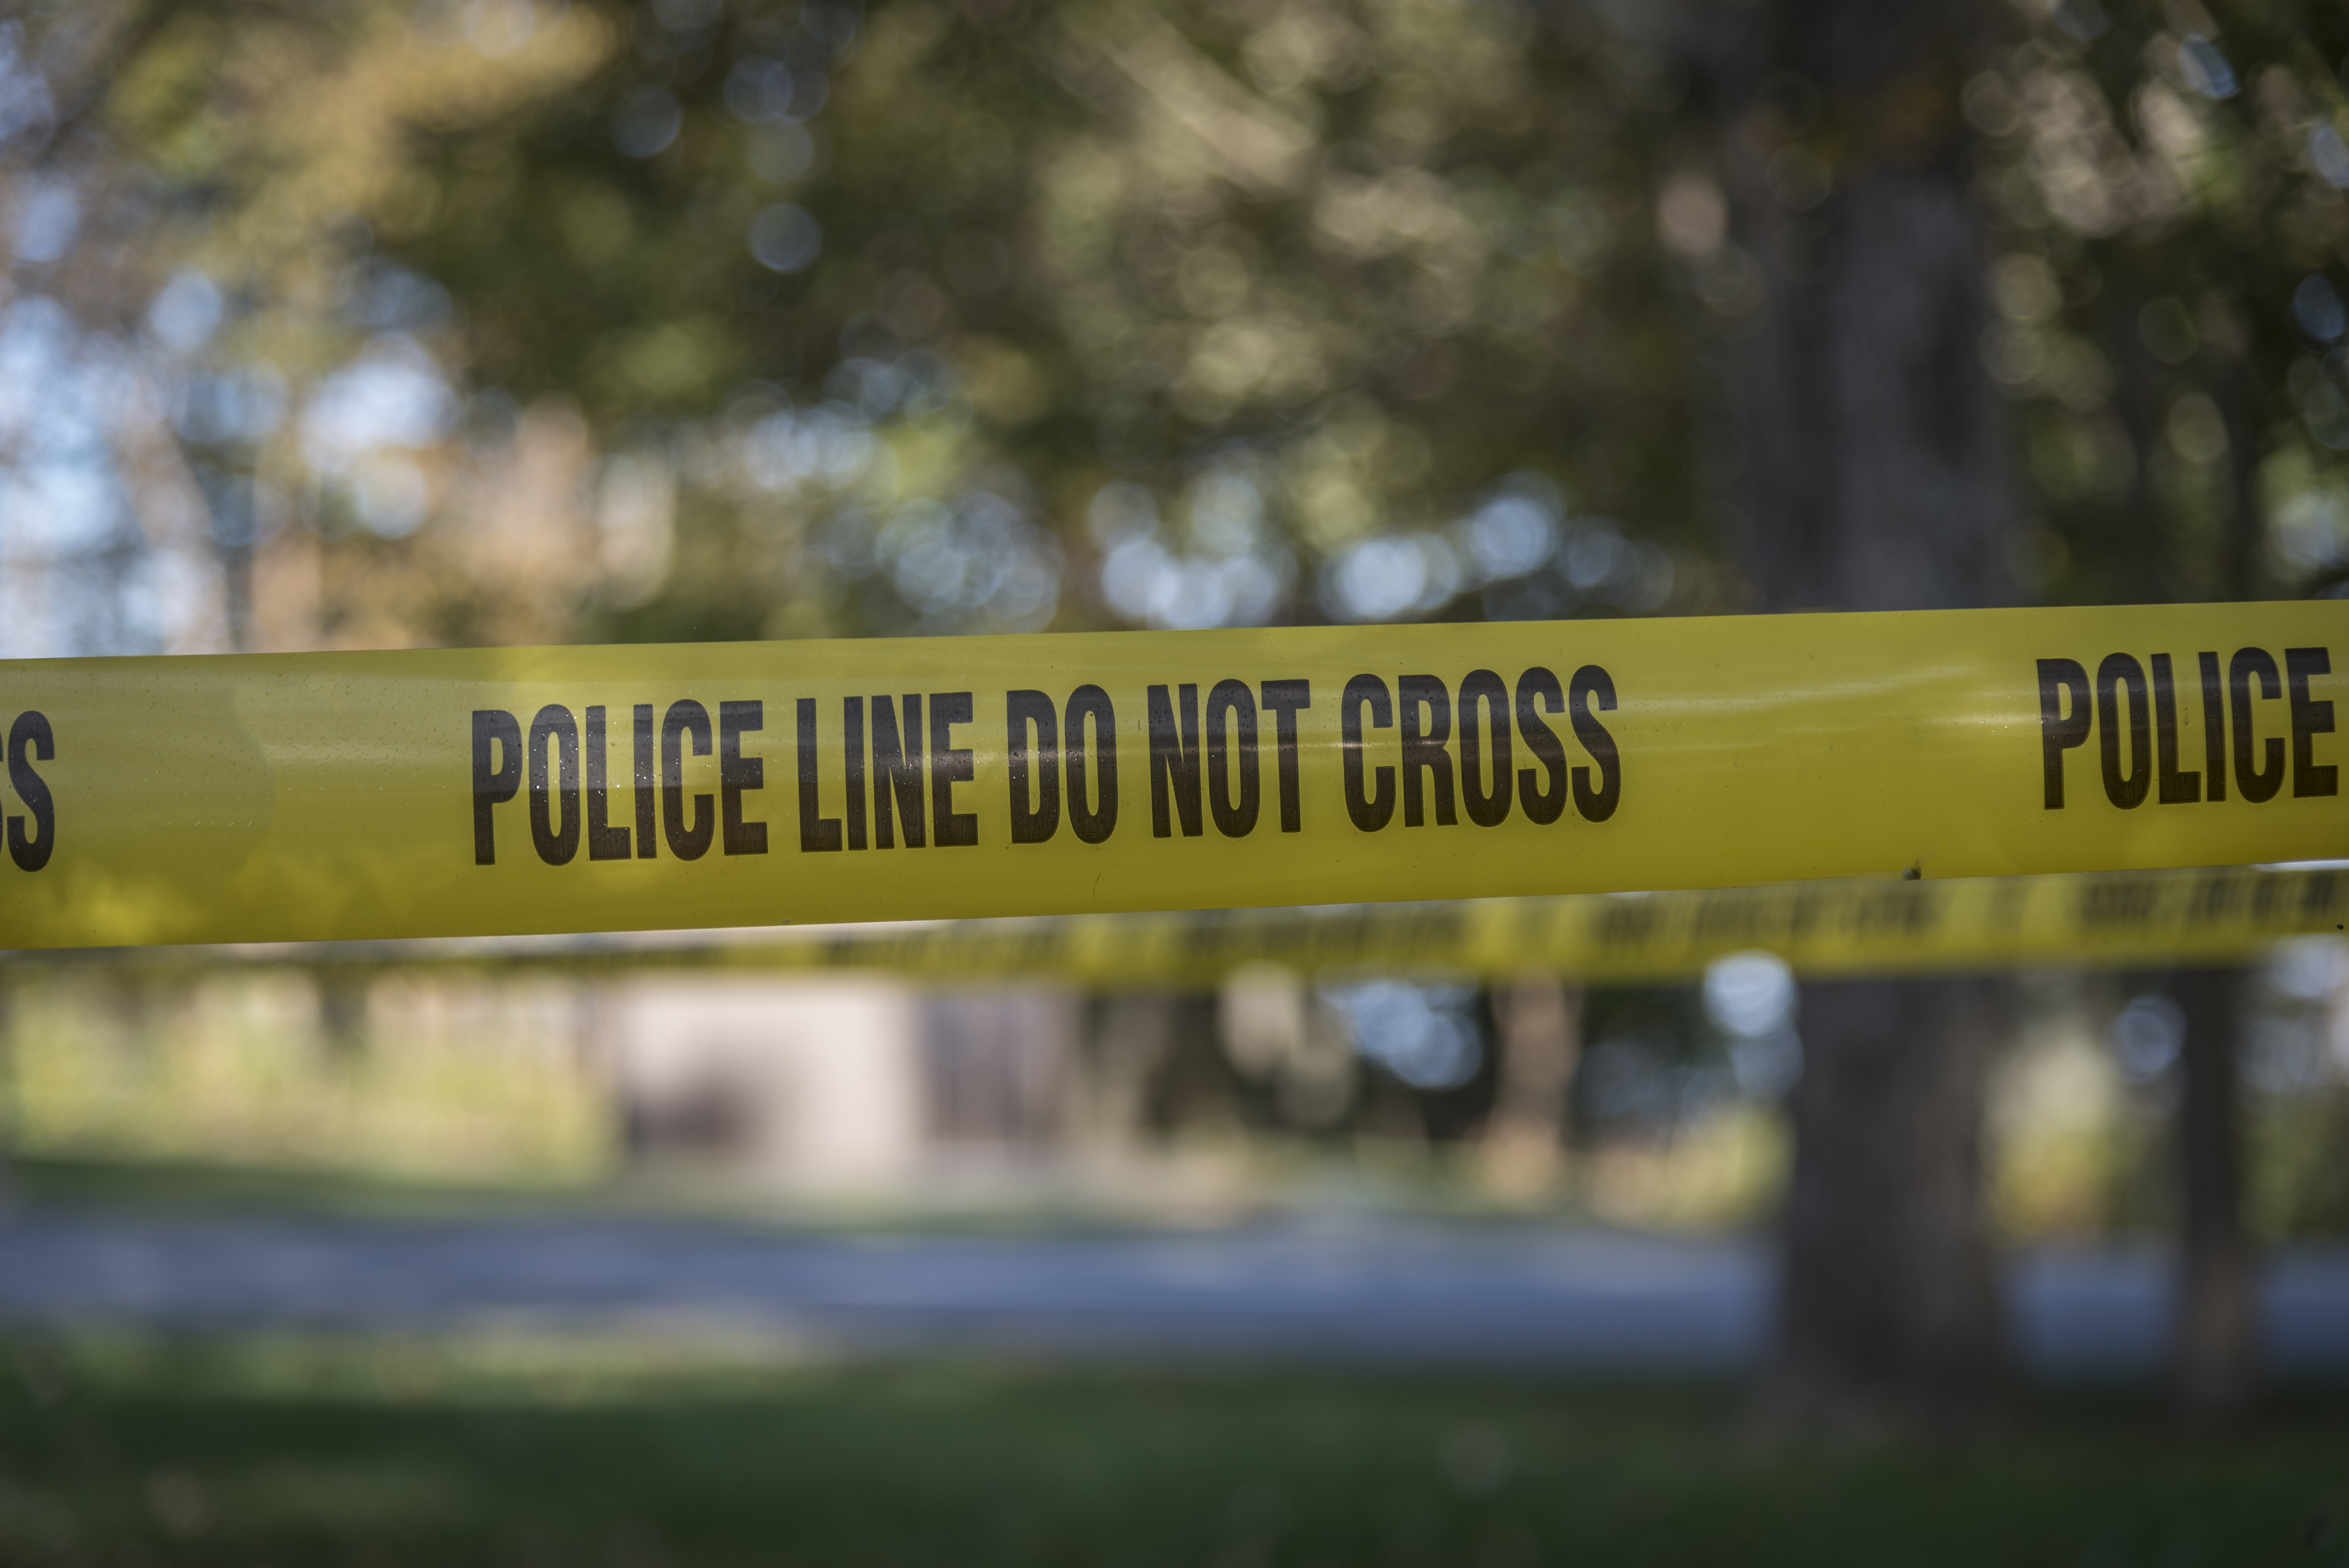 A 66-year-old man died Oct. 19, 2019, two days after being struck by a vehicle in Whiting, Indiana.